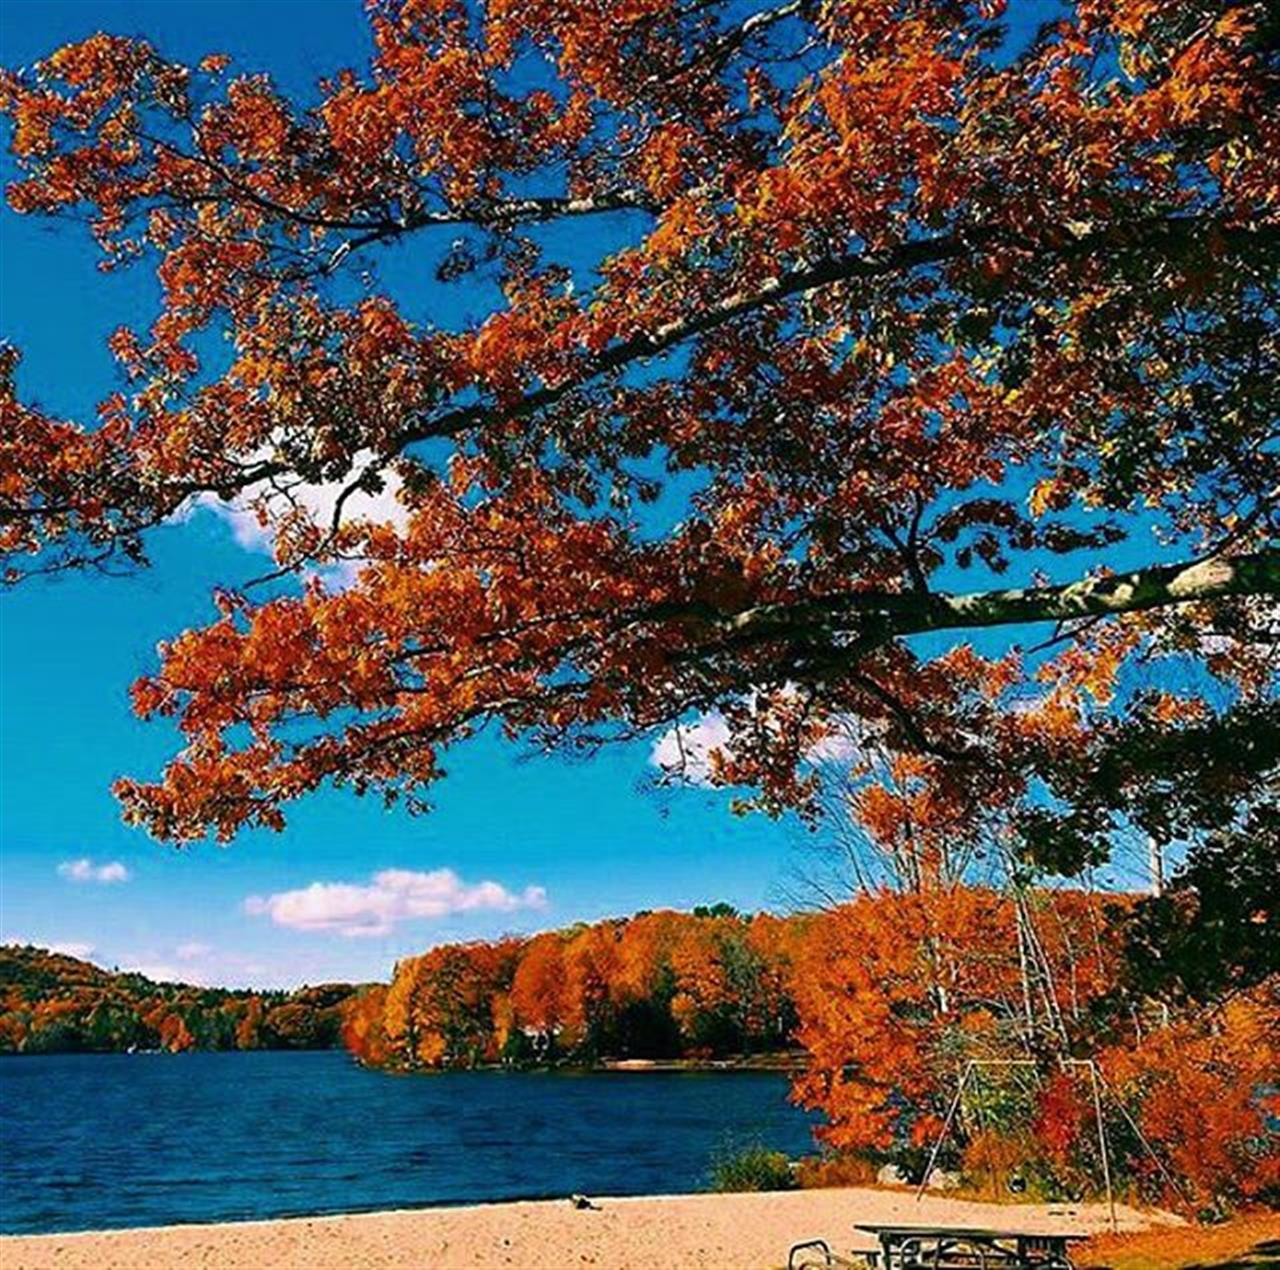 We ? the beach in the Fall ??: @kianalaroche__ ò ò ò ò ò ò ò #TheRollinsGroup #TheBeach #ShoreineRealEstate #leadingrelocal #FallInLove